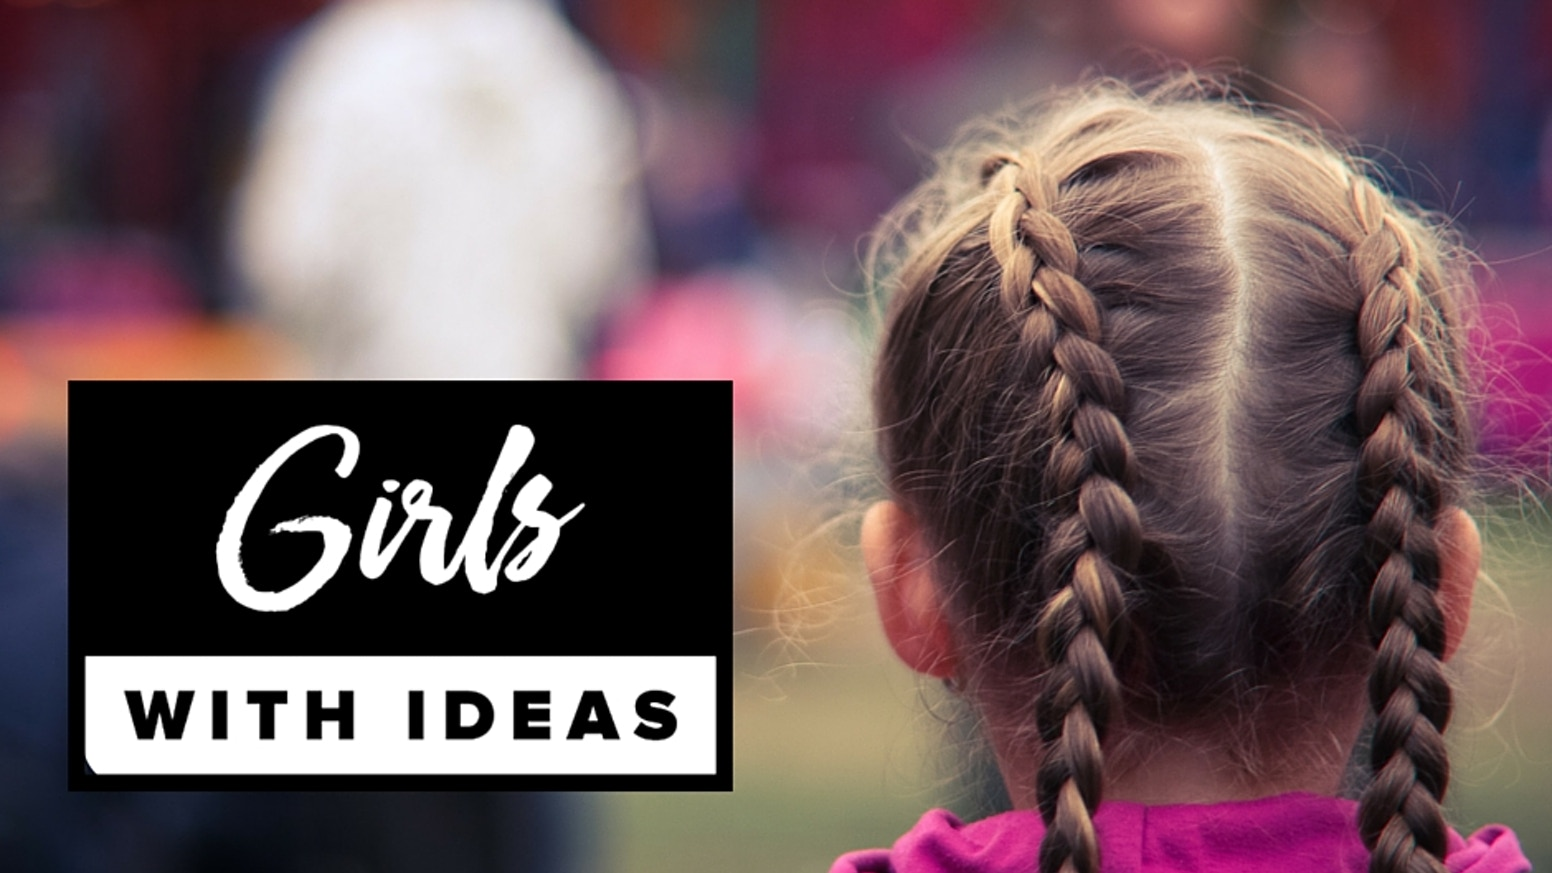 Fun, easy-to-use curriculum shows girls how to become confident leaders for life through hands-on group activities!